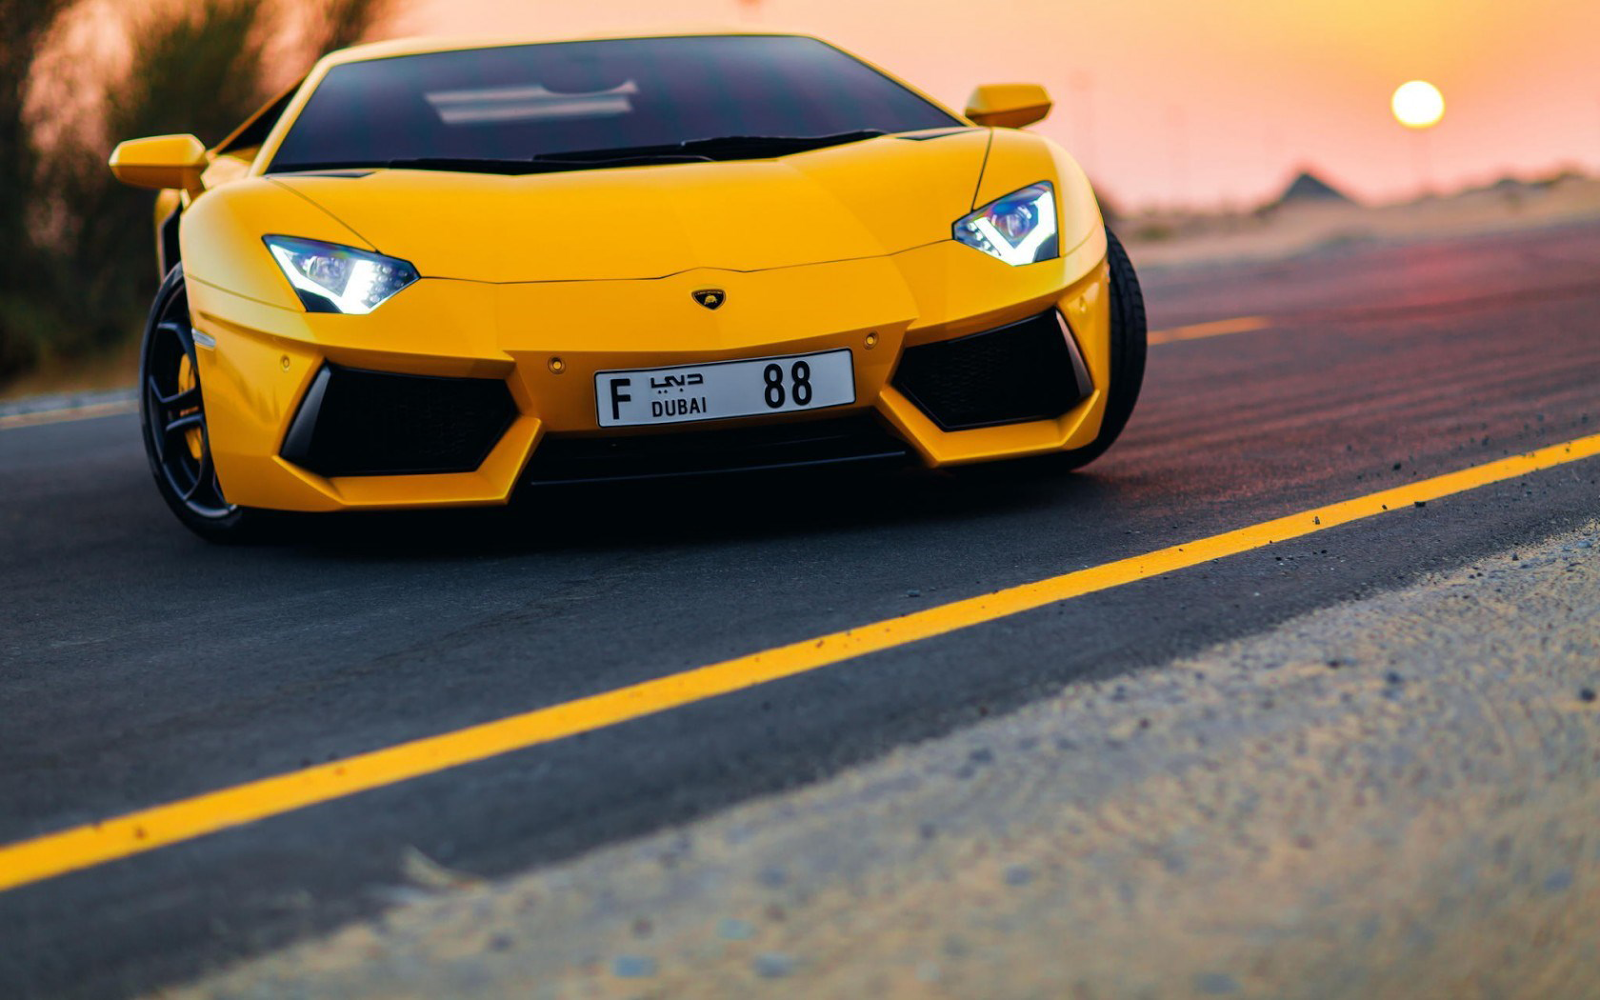 Car Lamborghini Aventador HD Desktop Wallpaper HD Desktop Wallpapers 1600x1000